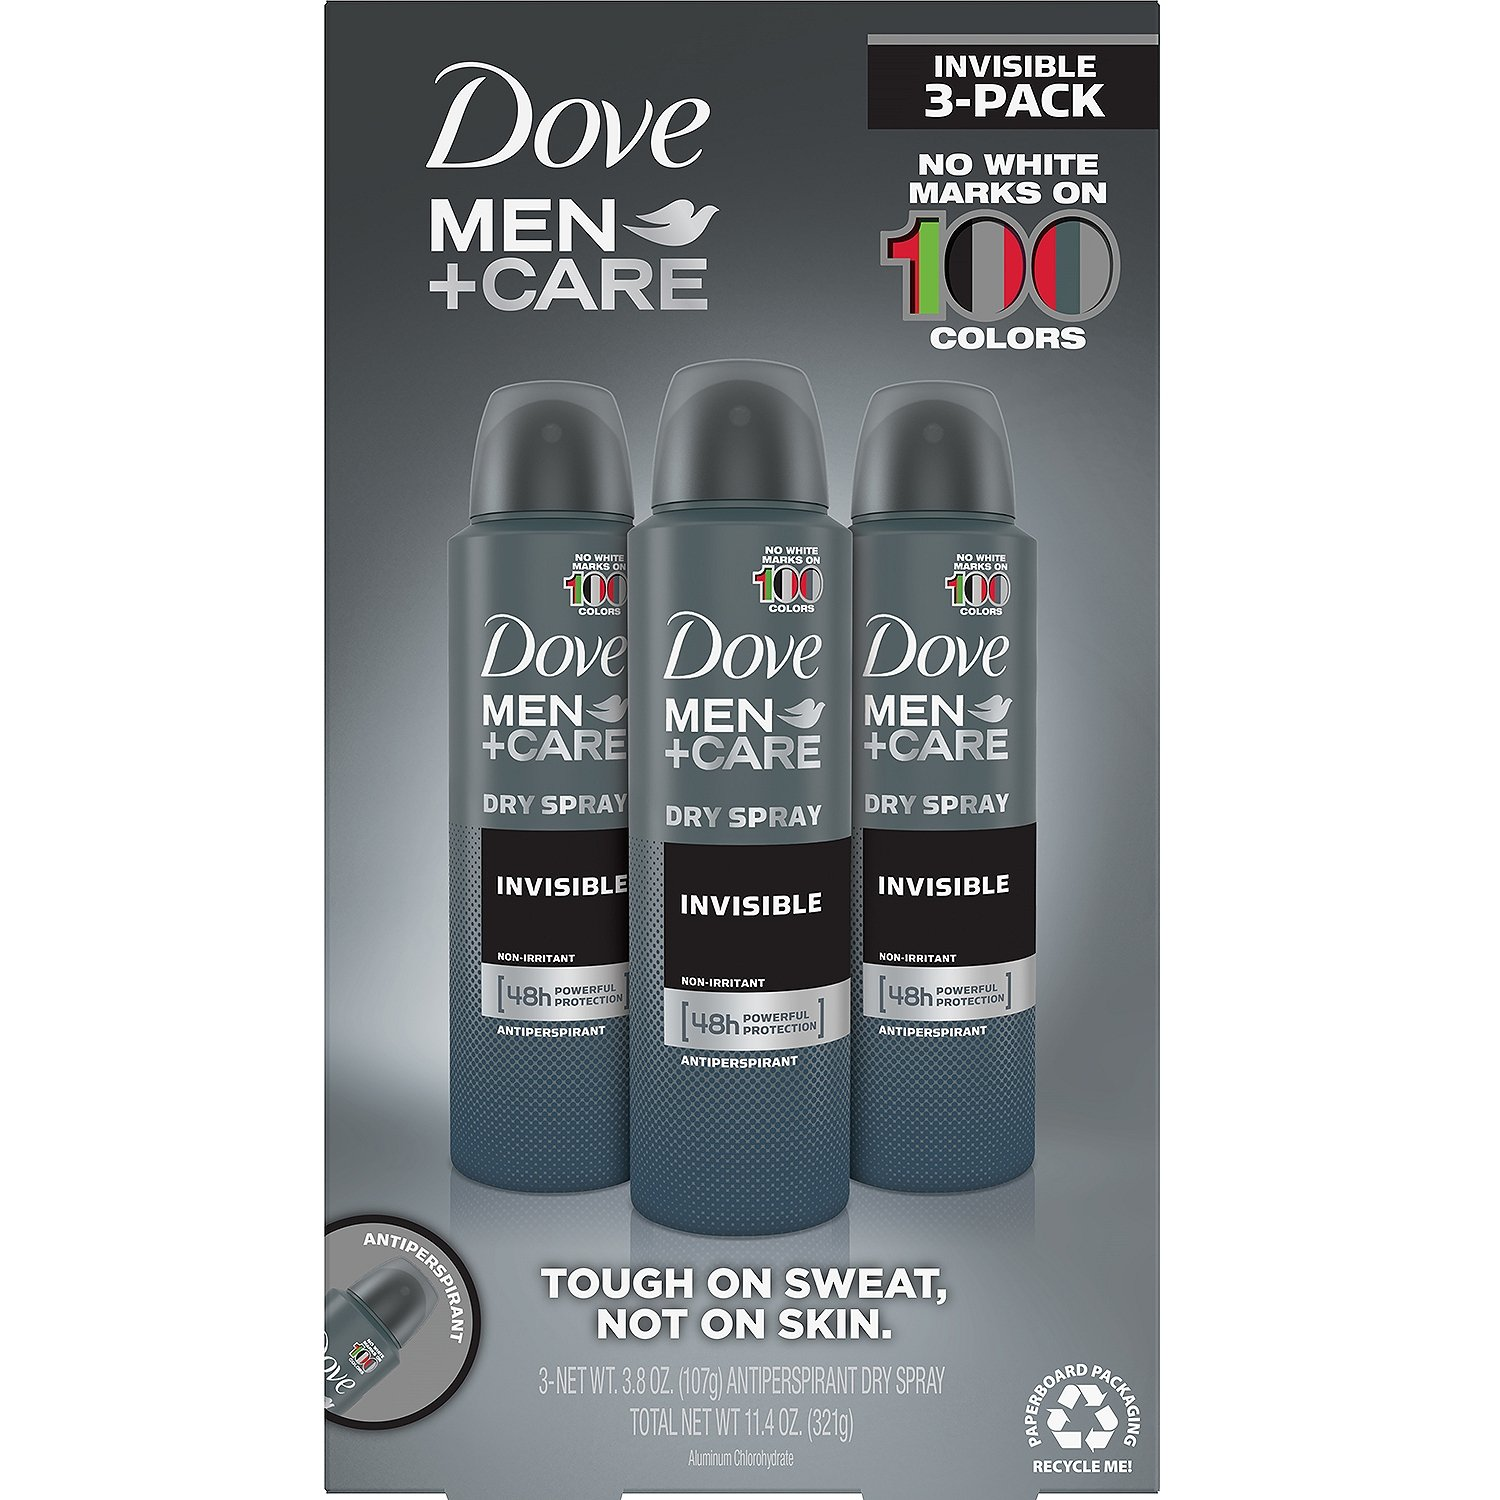 Dove Men Care Invisible Dry Spray Deodorant (3.8 oz, 3 pk.)